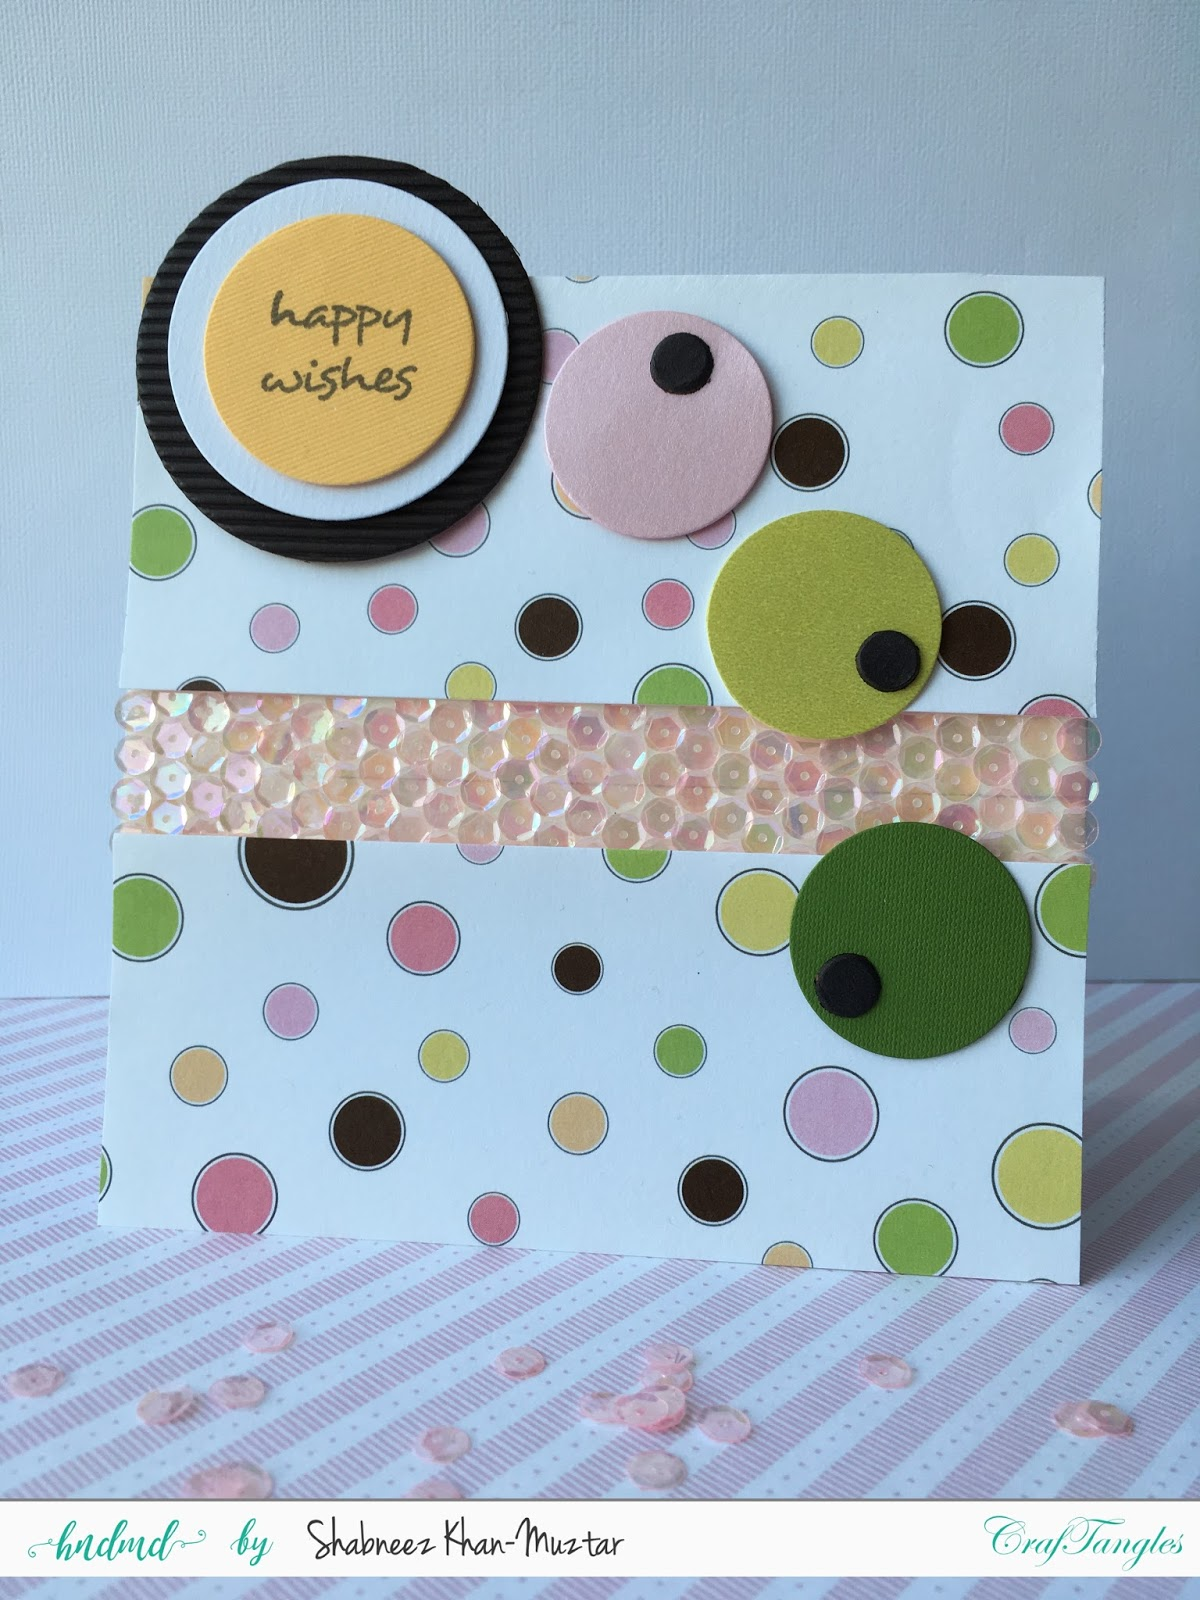 Using CrafTangles Sequins on Cards 3